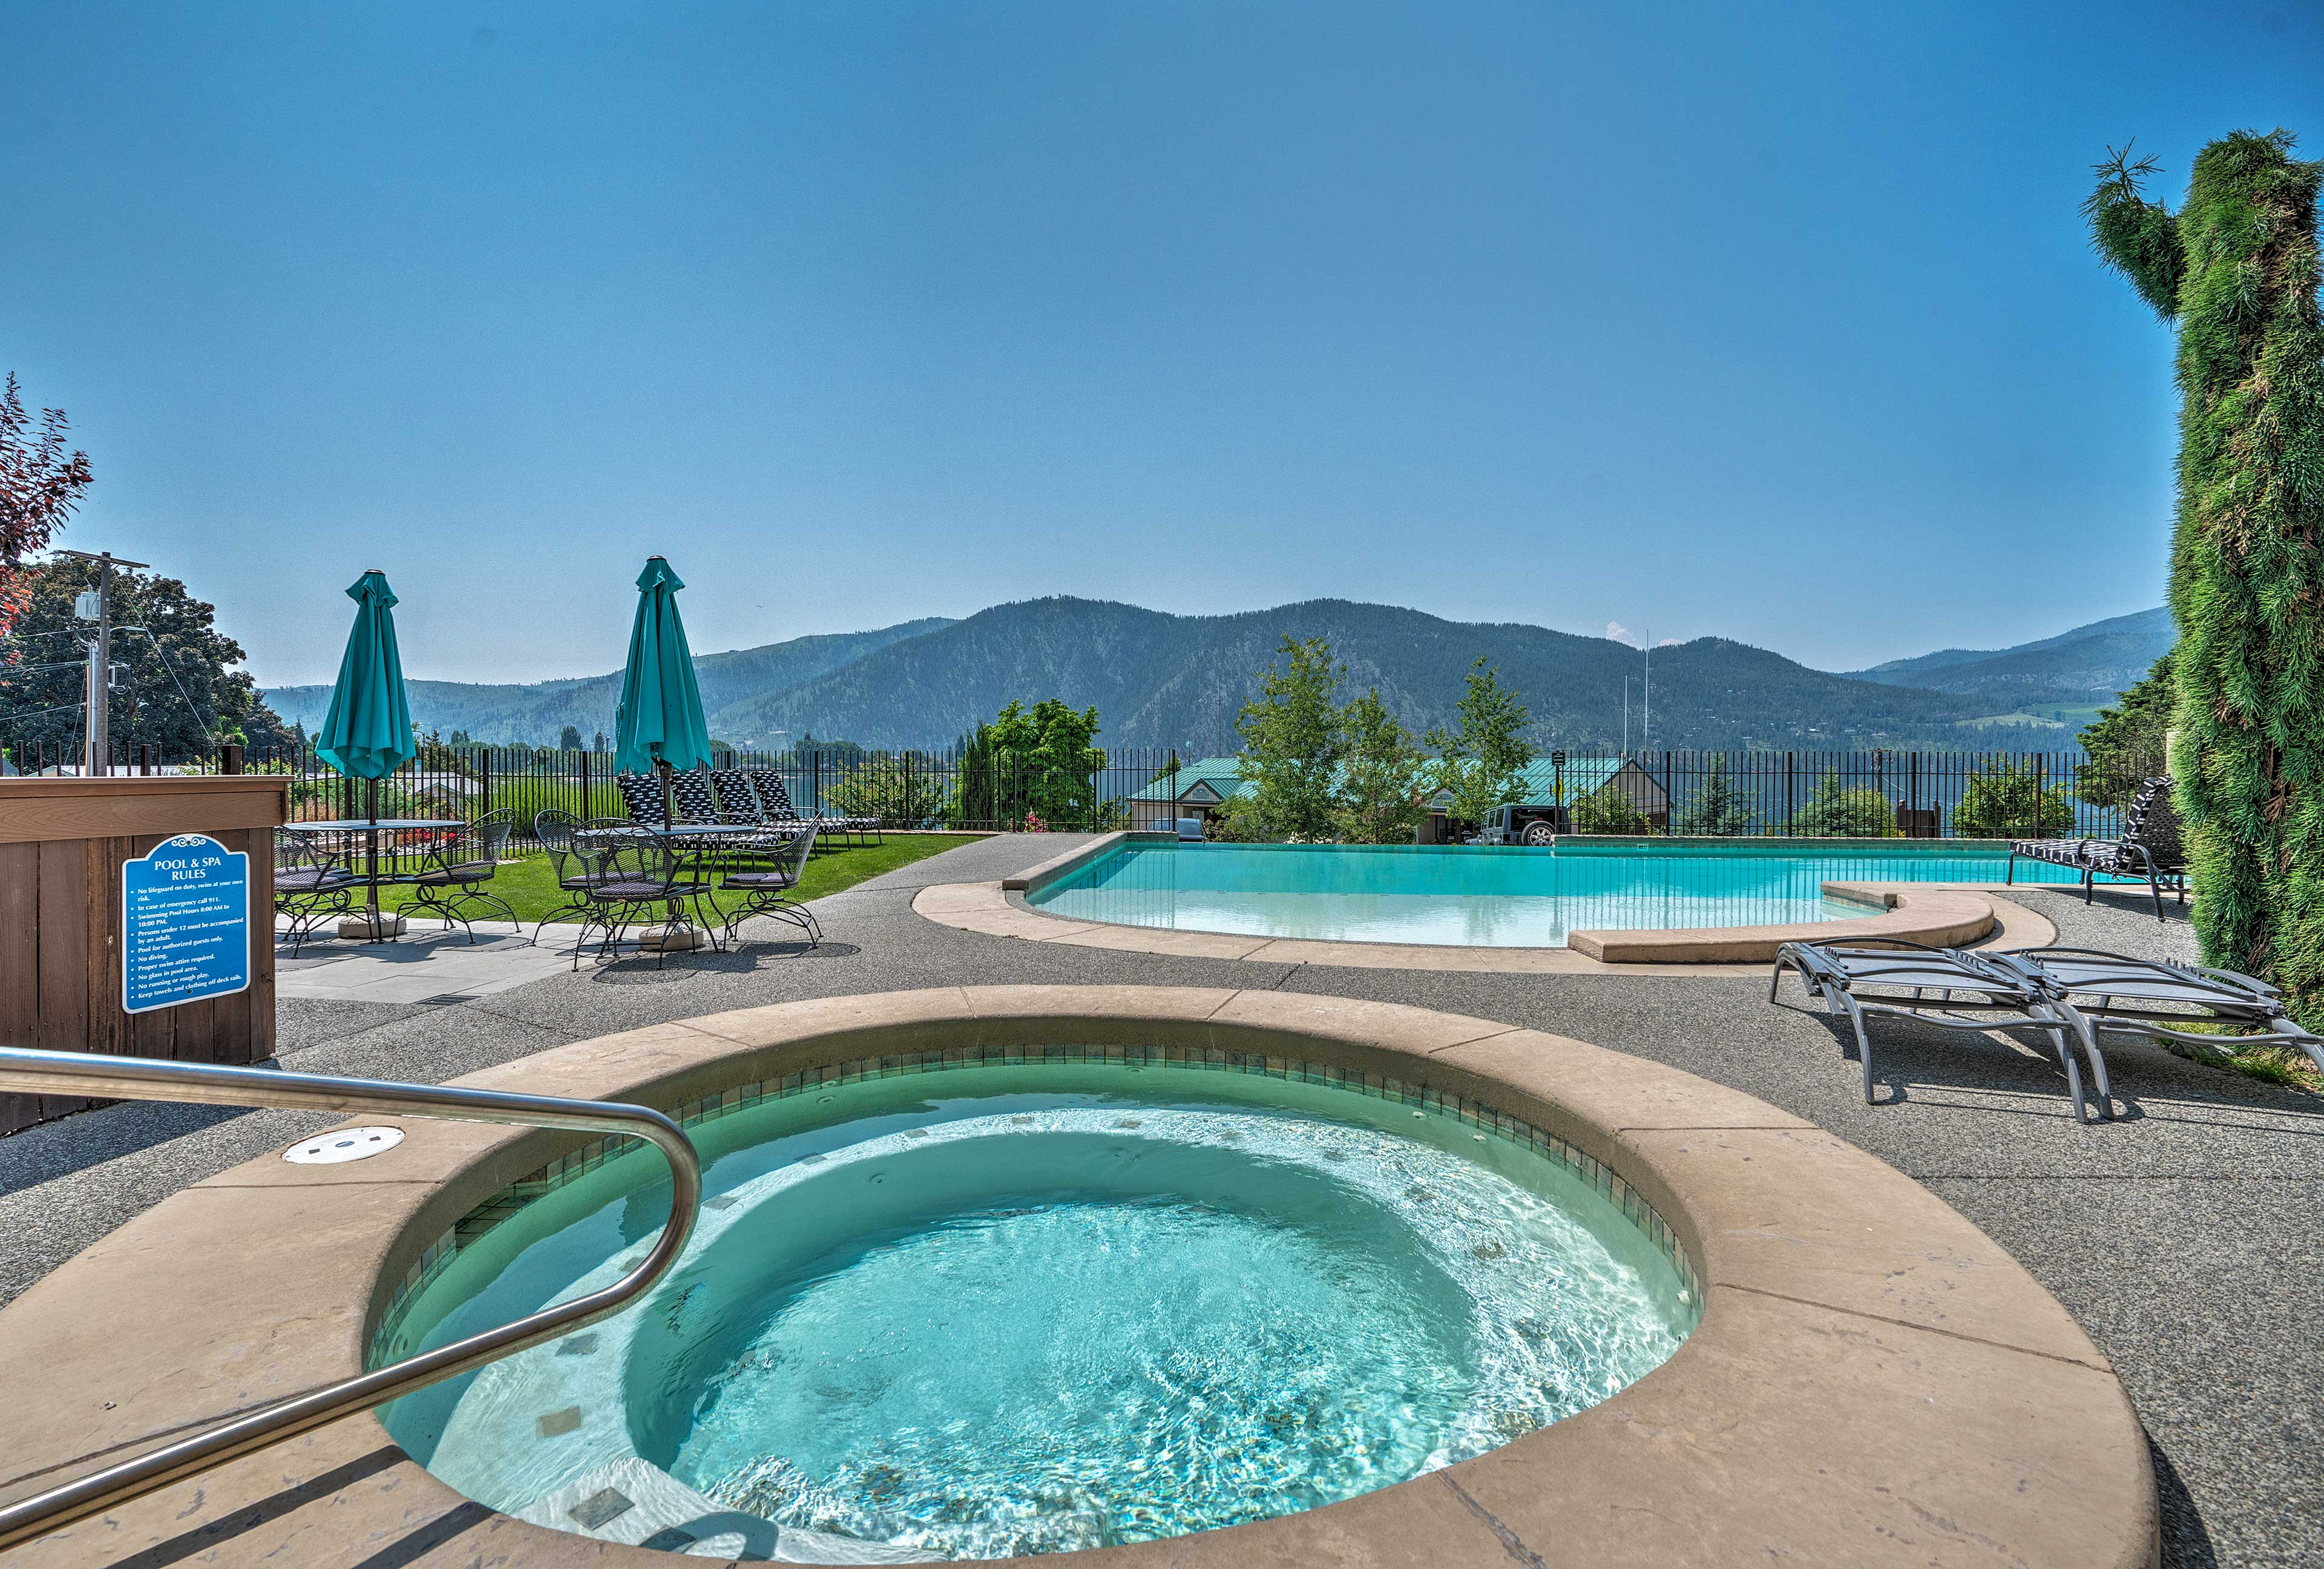 Book your next Pacific Northwest getaway to this resort vacation rental!